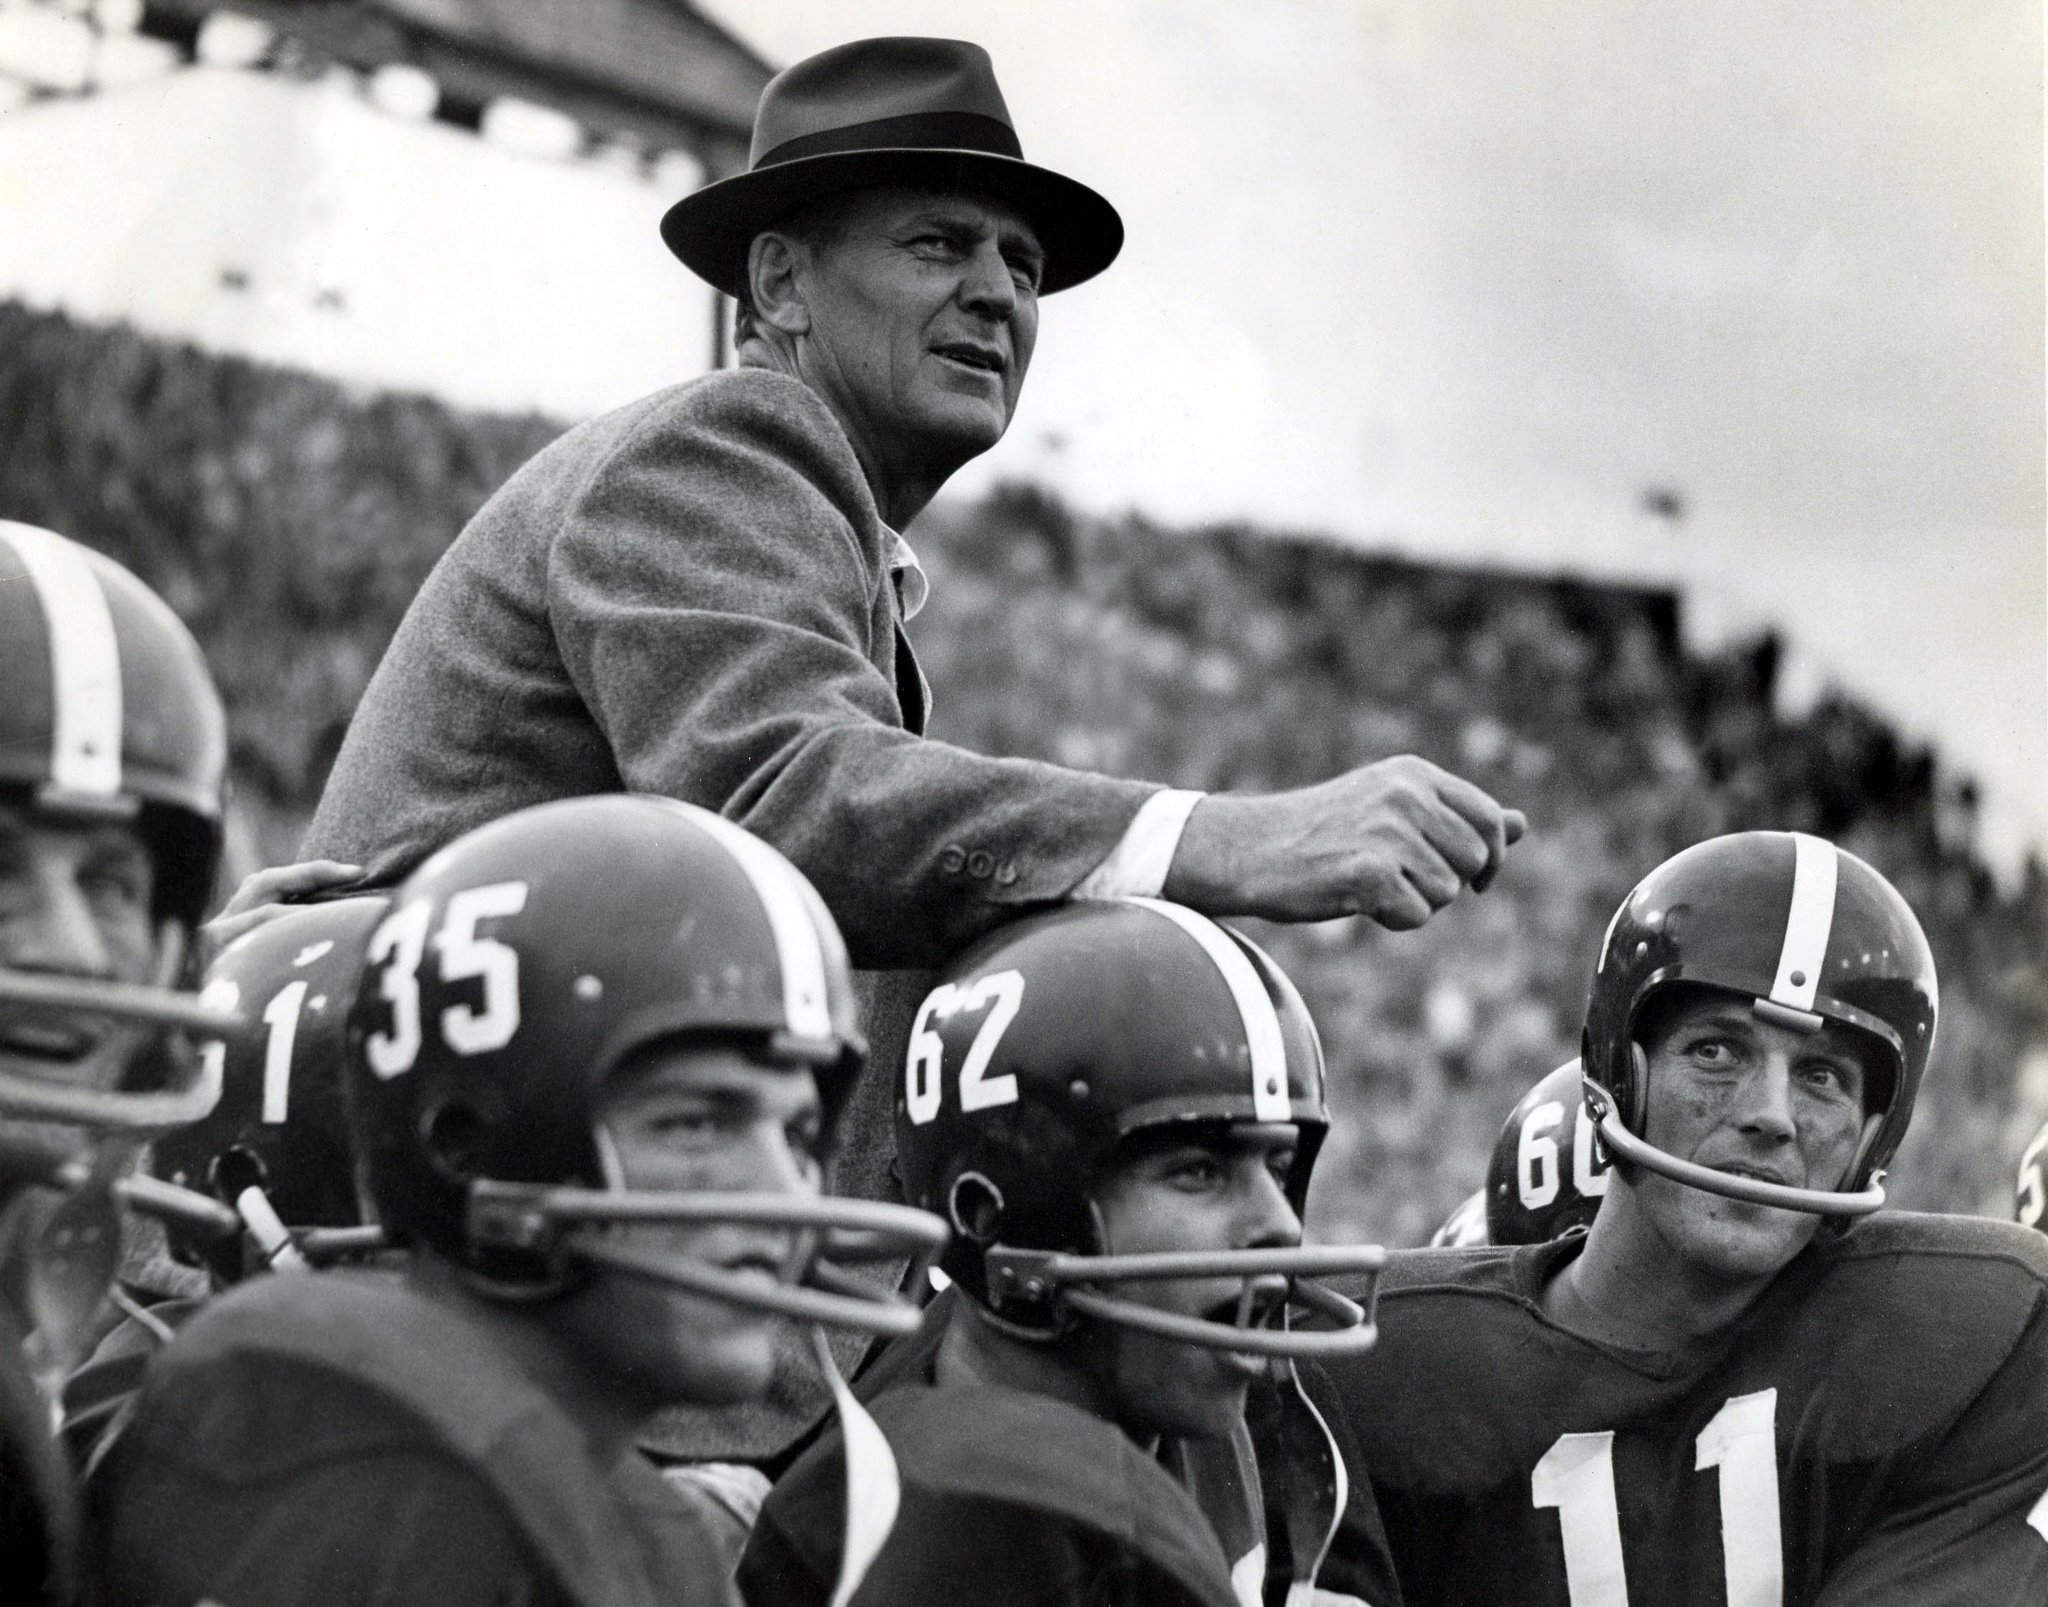 Coach Bear Bryant on the shoulders of his players